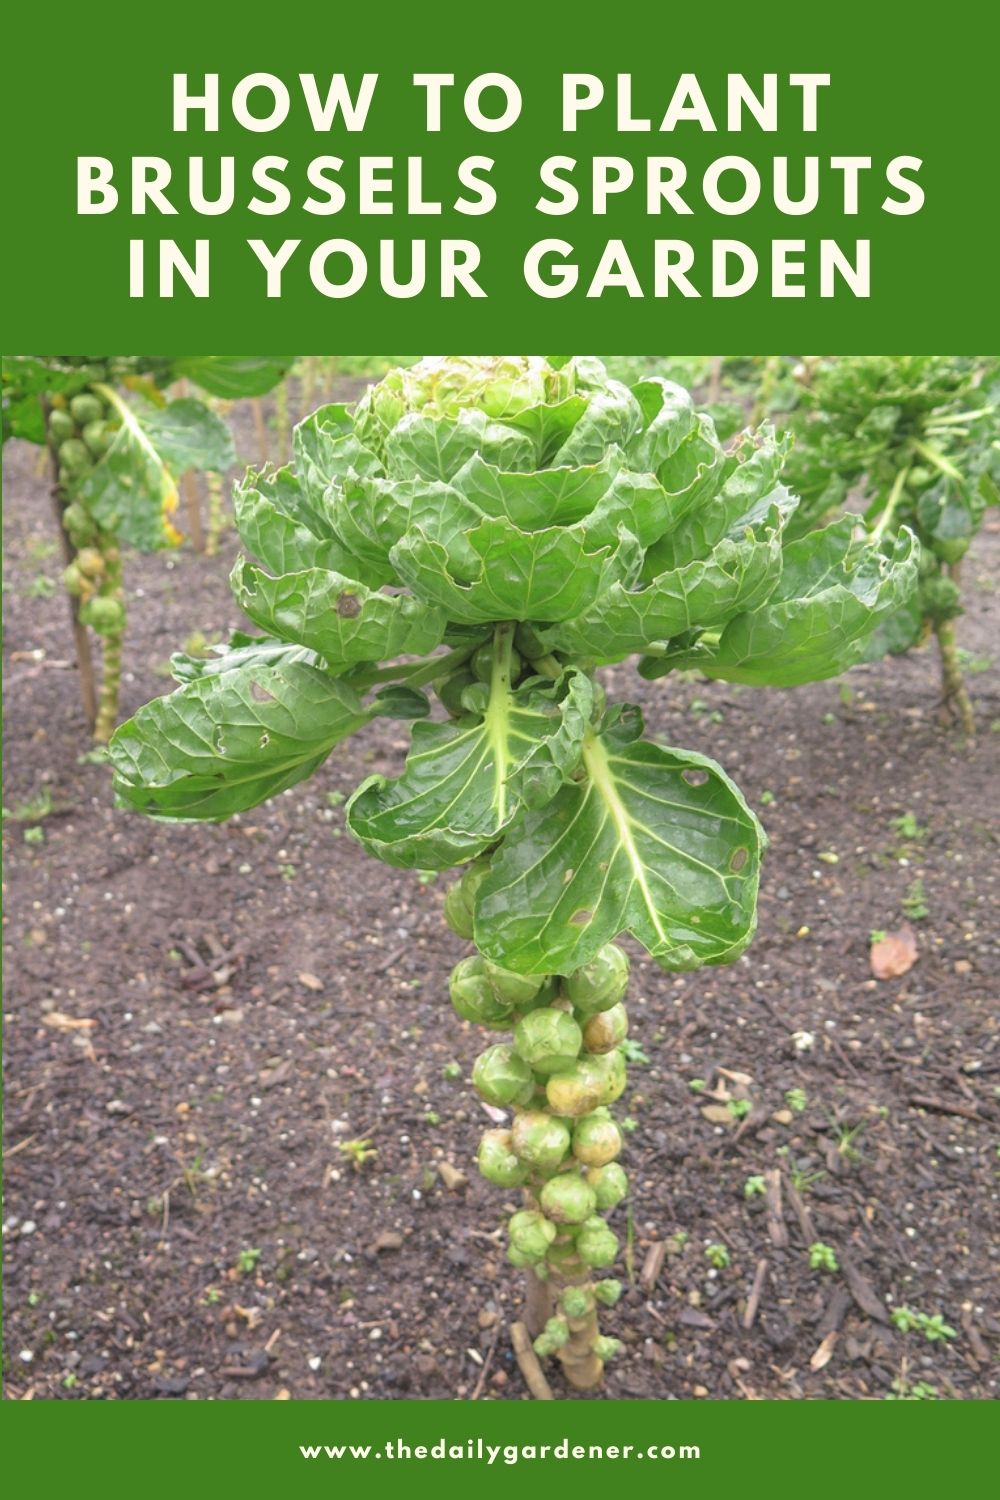 How to Plant Brussels Sprouts in Your Garden (Tricks to Care!) 1